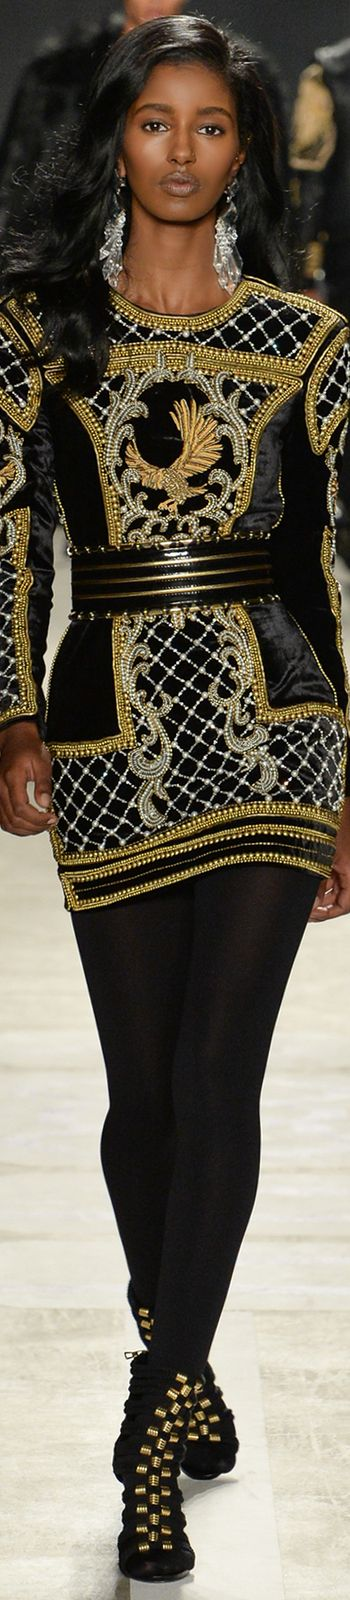 Balmain x H&M Collaboration 2016 Collection | LOLO     ᘡղbᘠ